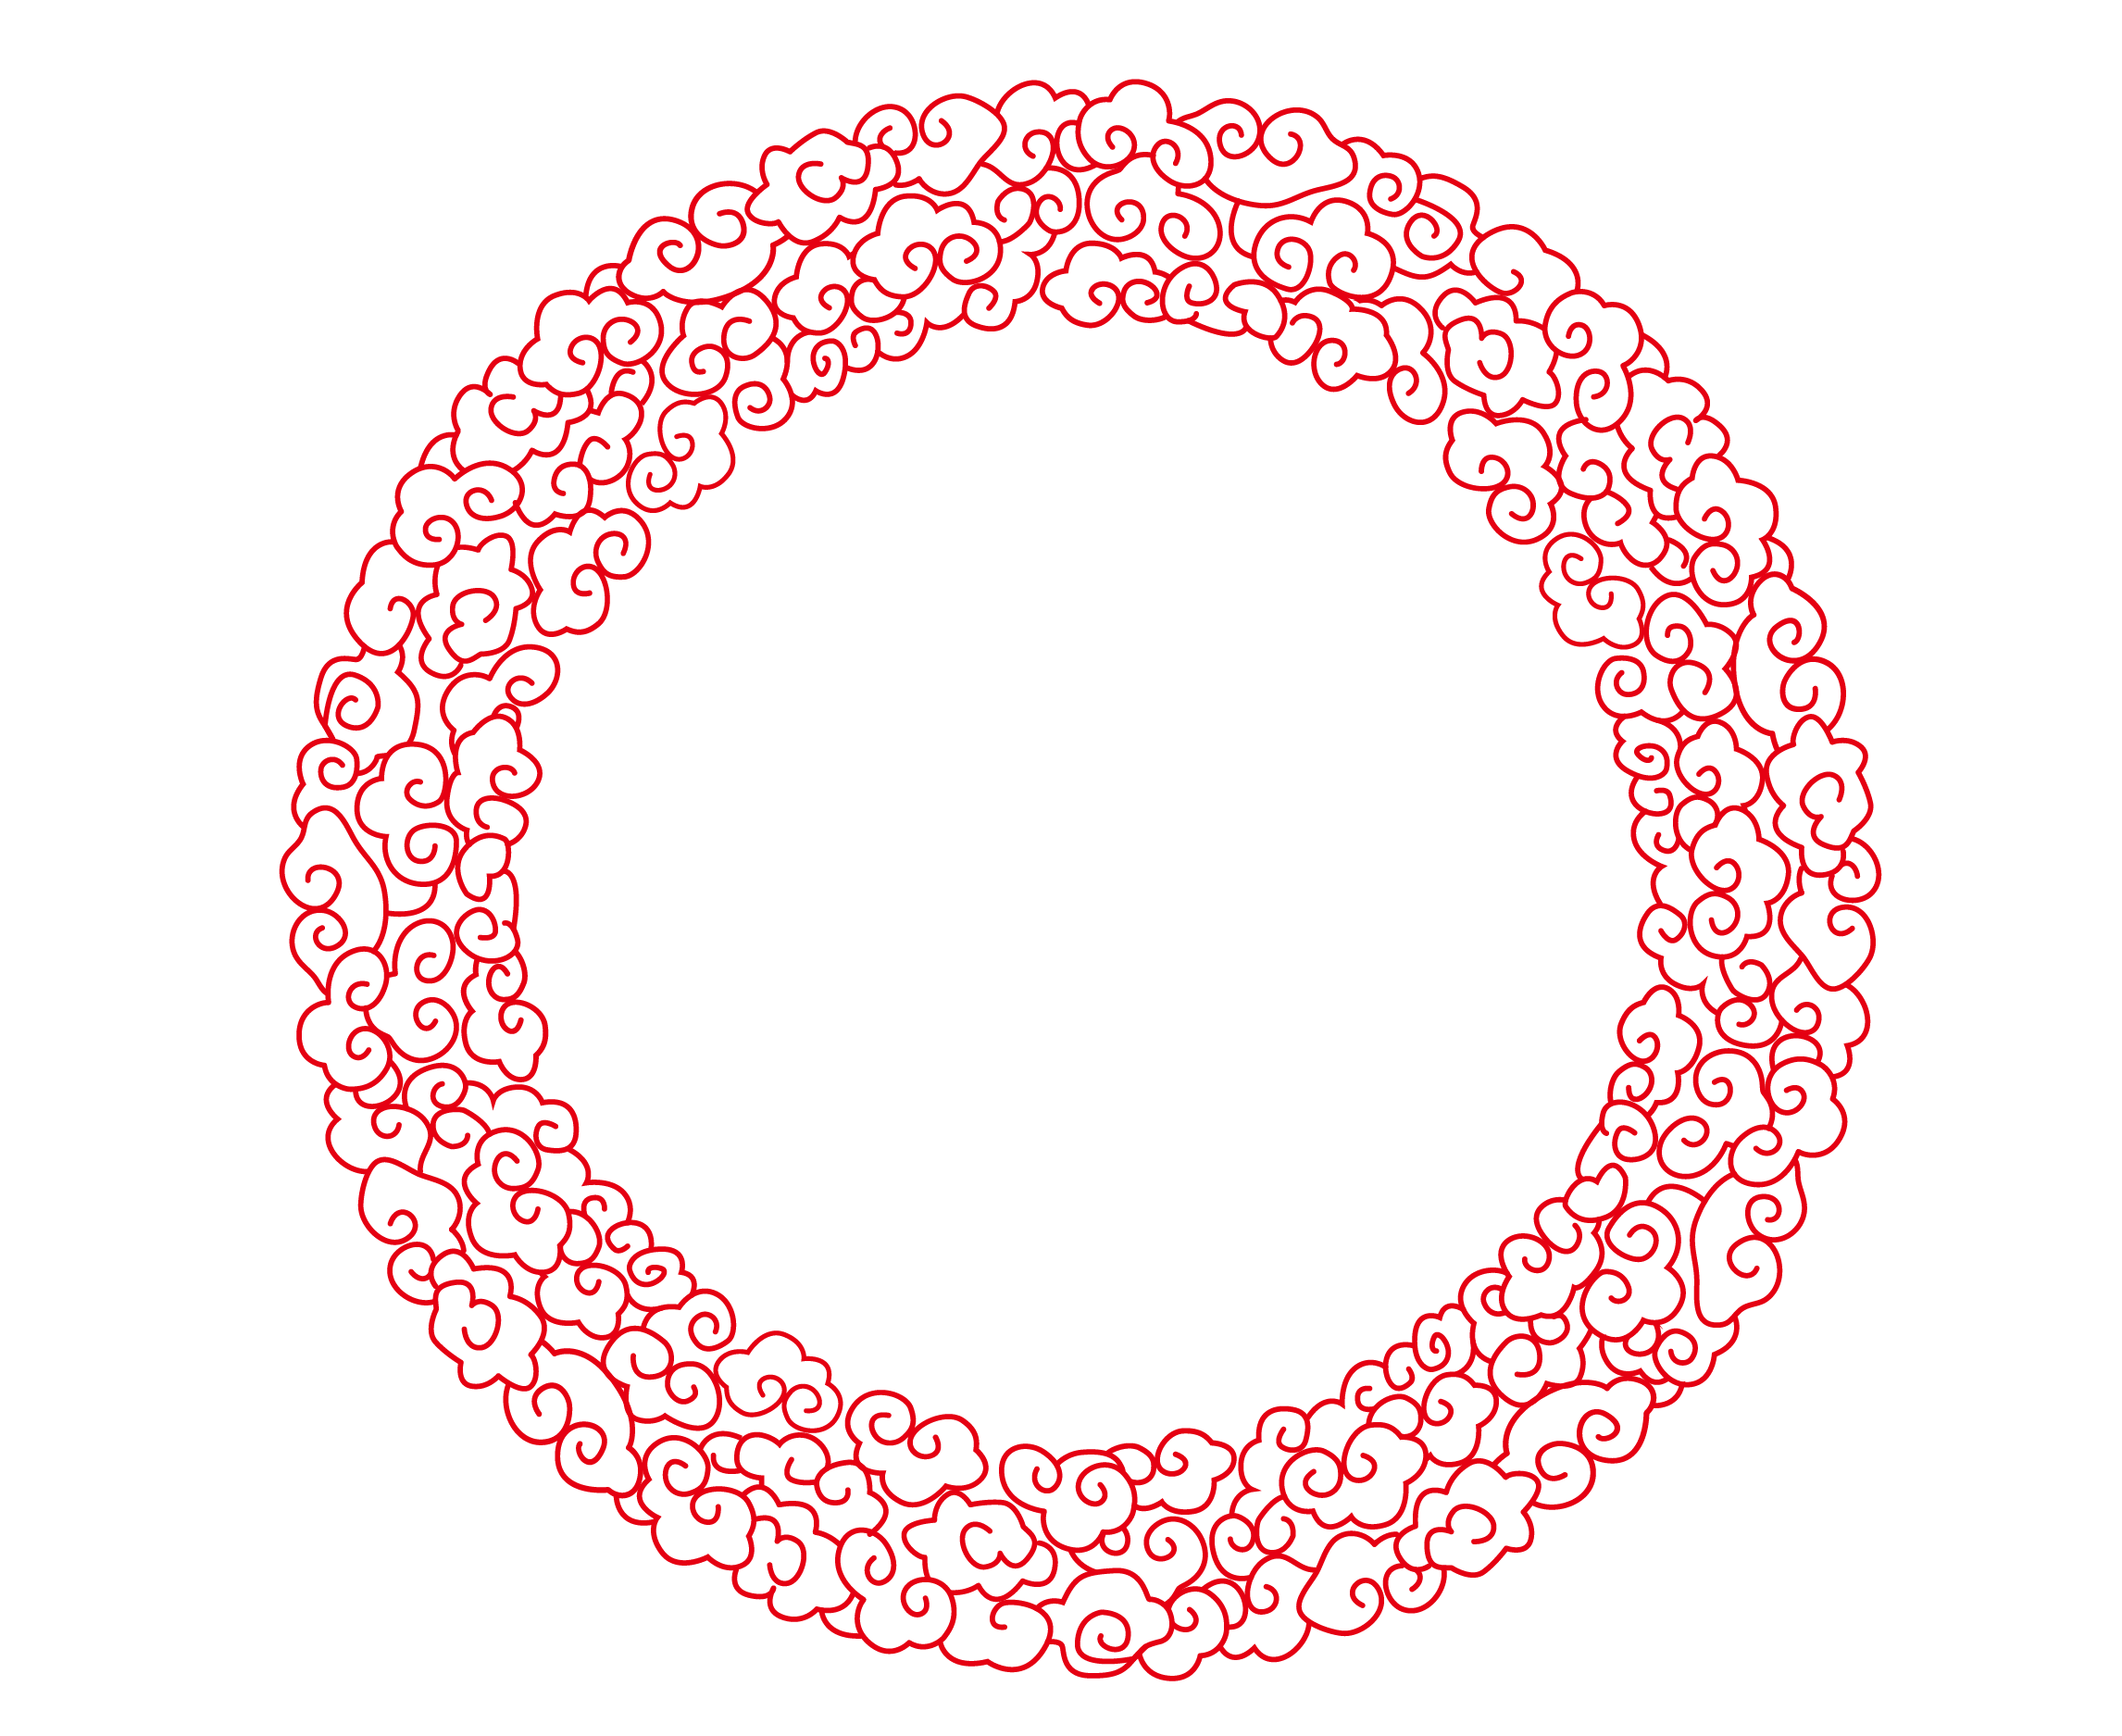 Chinese clouds png. Circle euclidean vector style